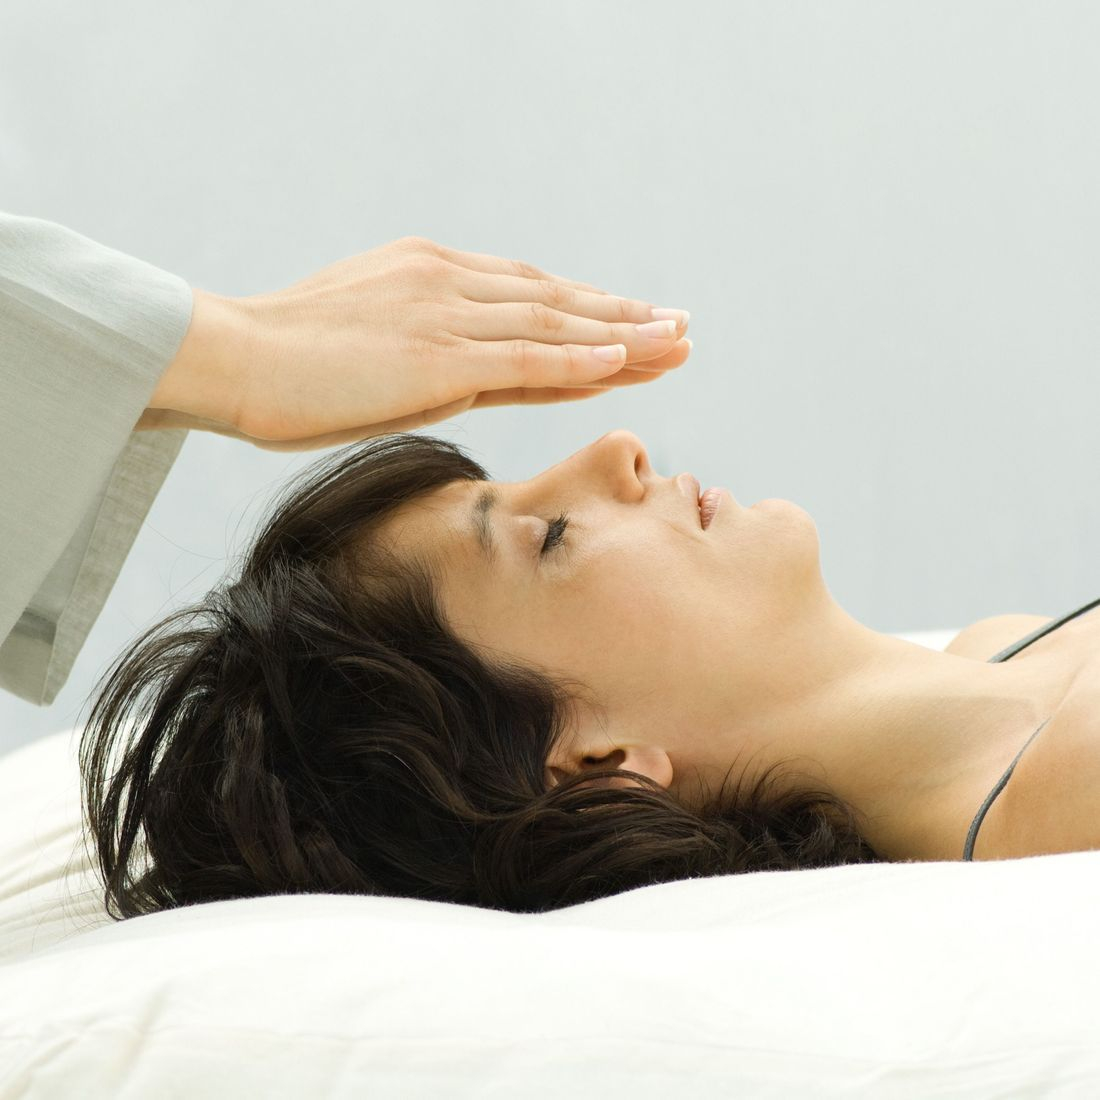 If you suffer headaches, chronic pain, post-traumatic stress, anxiety or depression, Cranial Sacral Therapy can bring relief.